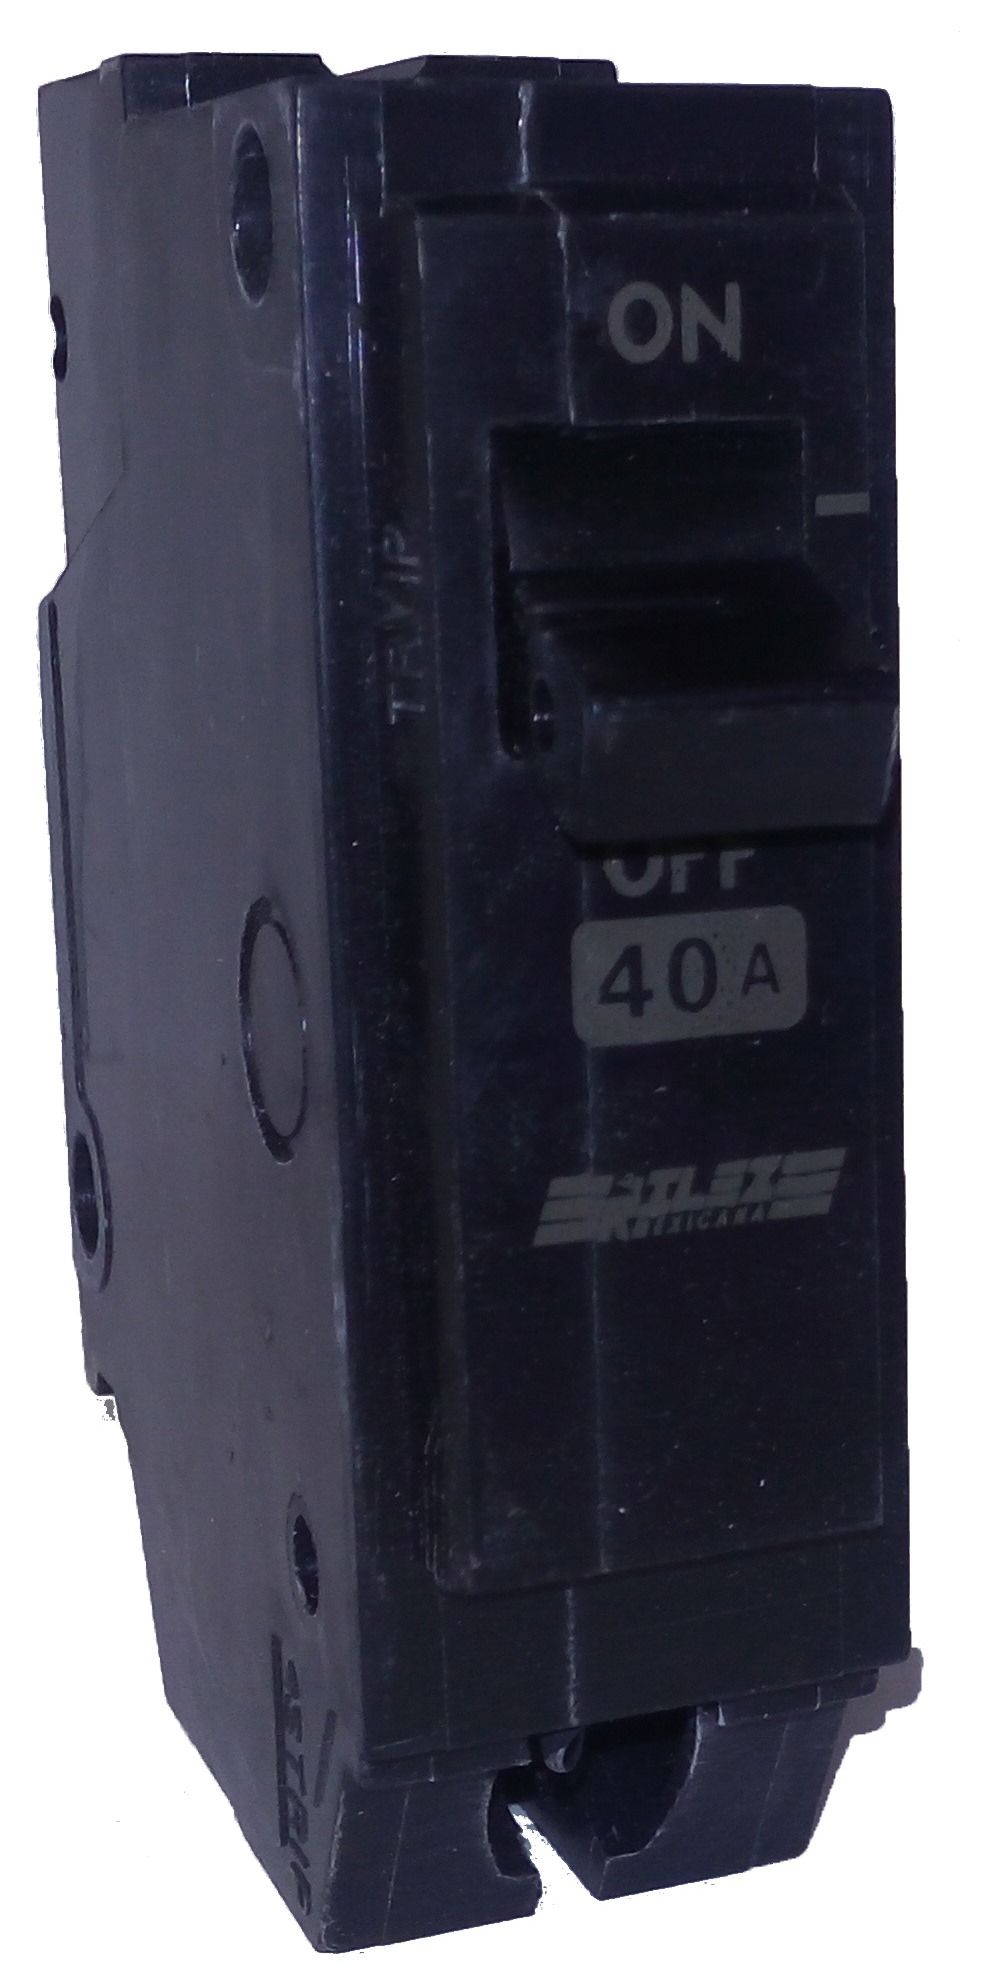 INTERRUPTOR TERM. 1 X 40 A TIPO QP